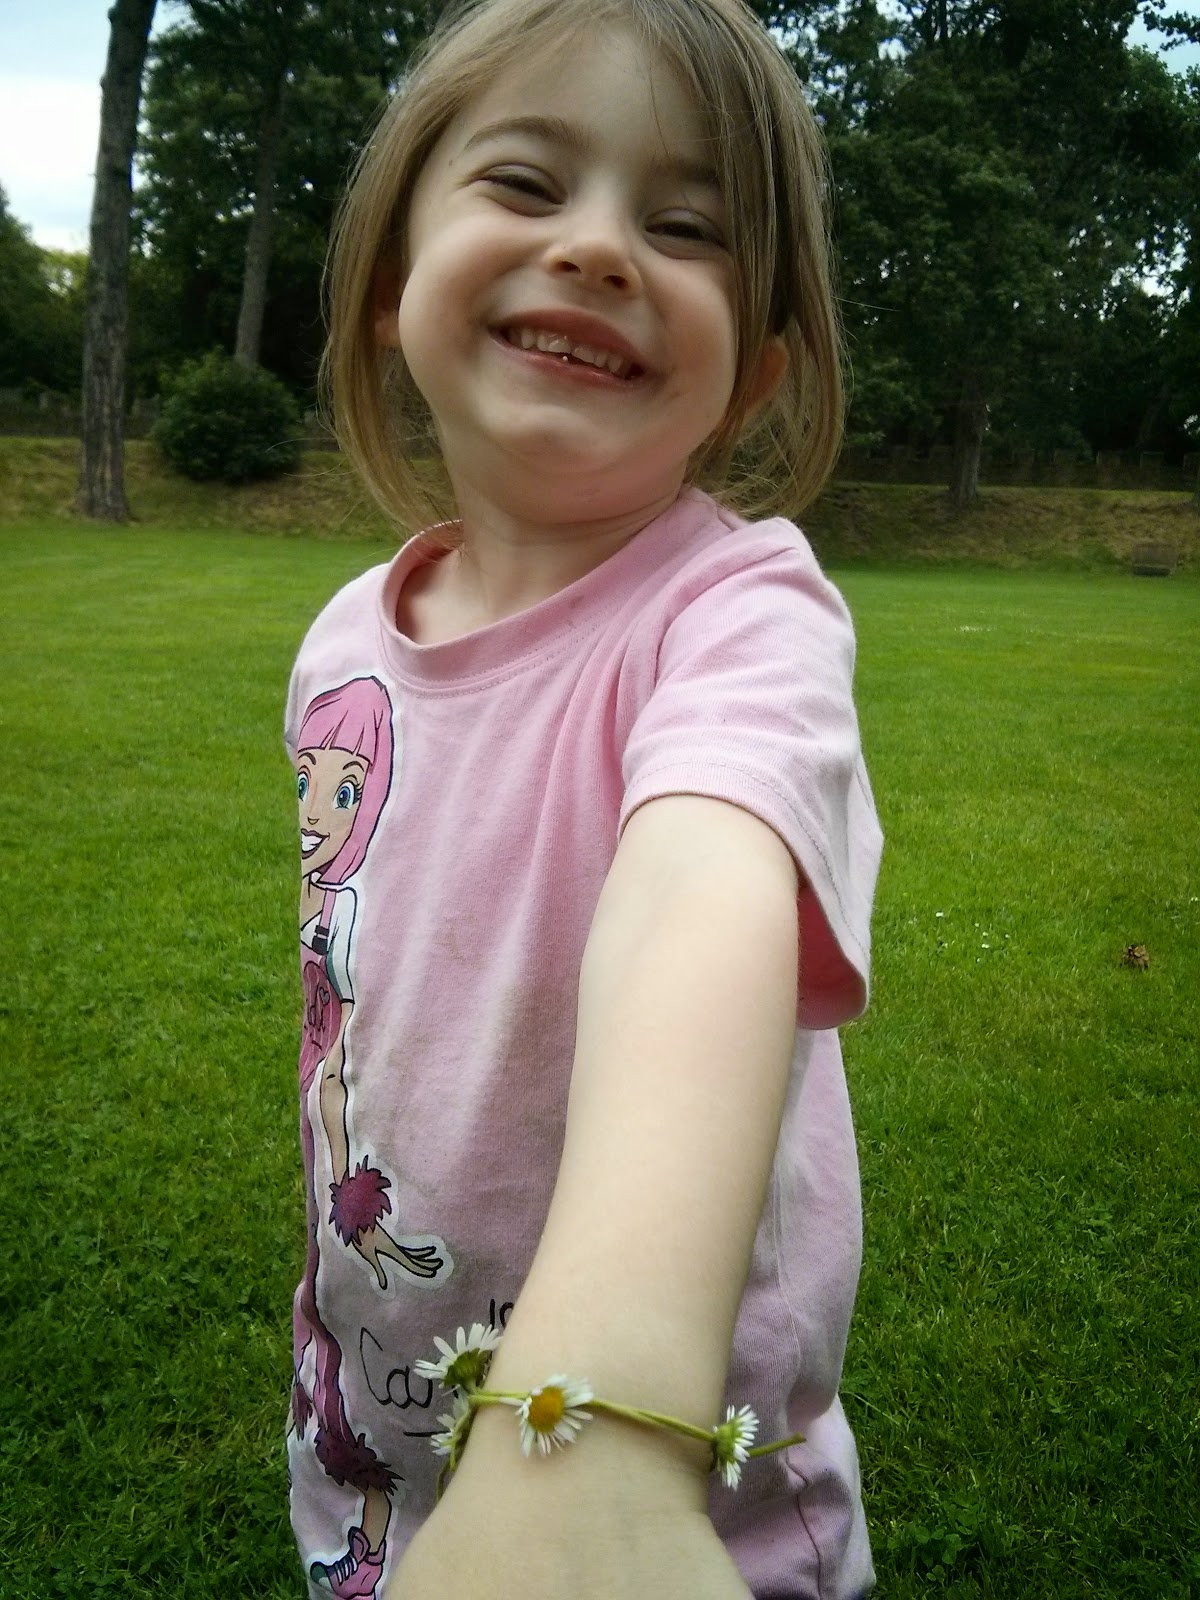 Eldest with Daisy chain